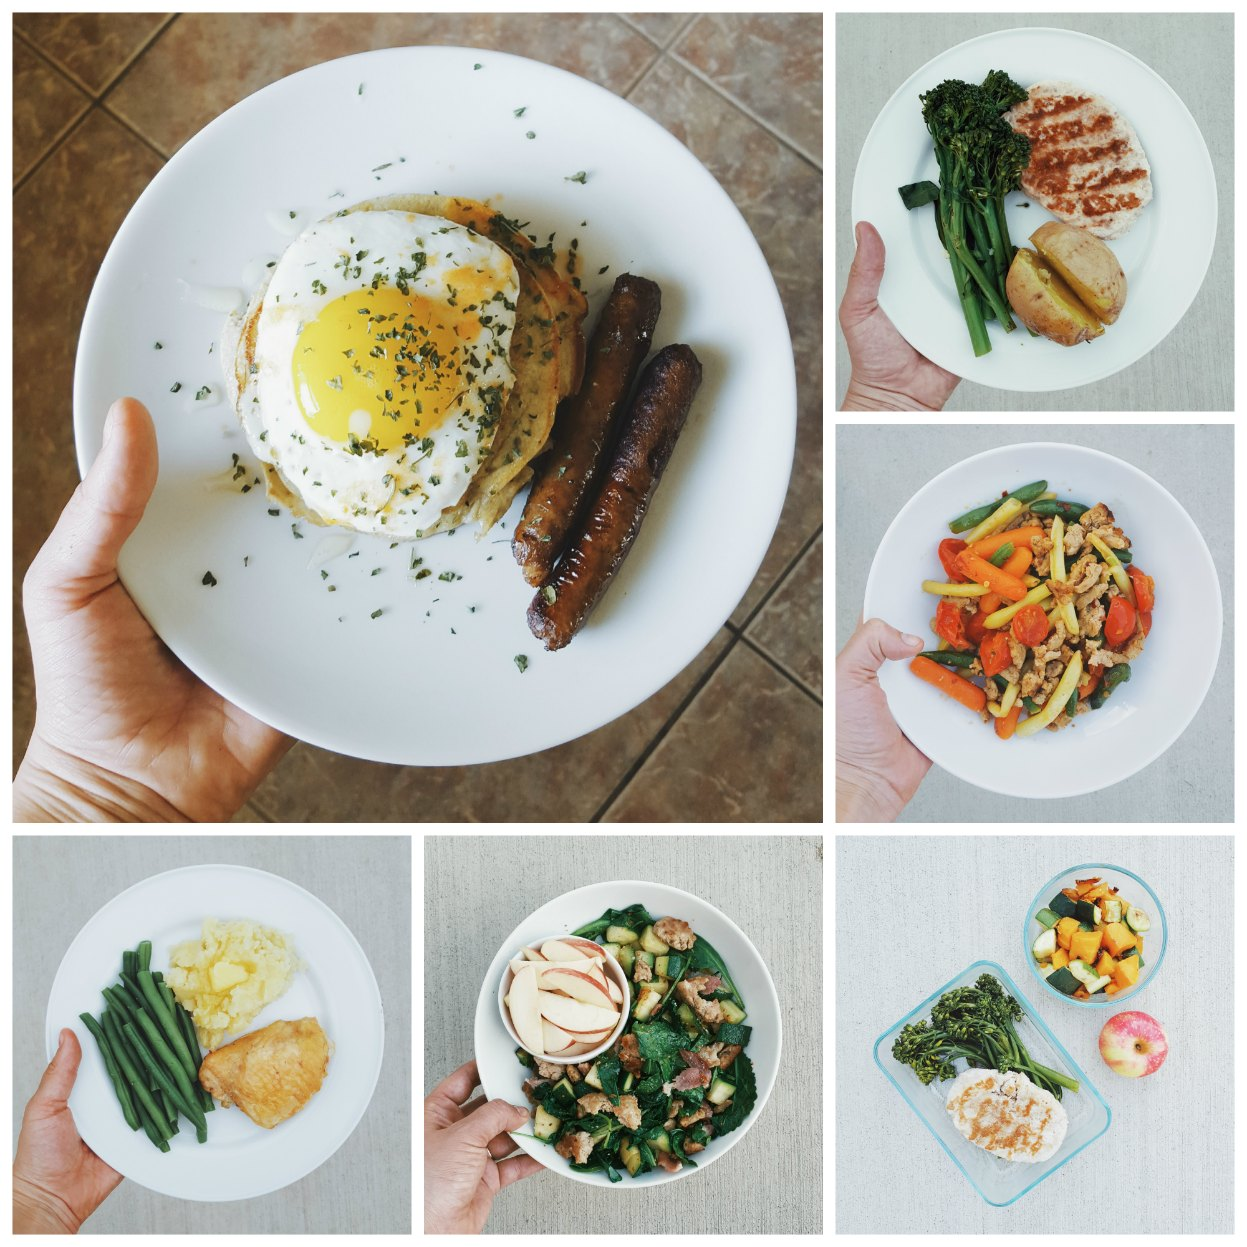 Wellness Wednesdays on Instagram | Find more great recipes at FestFoods.com